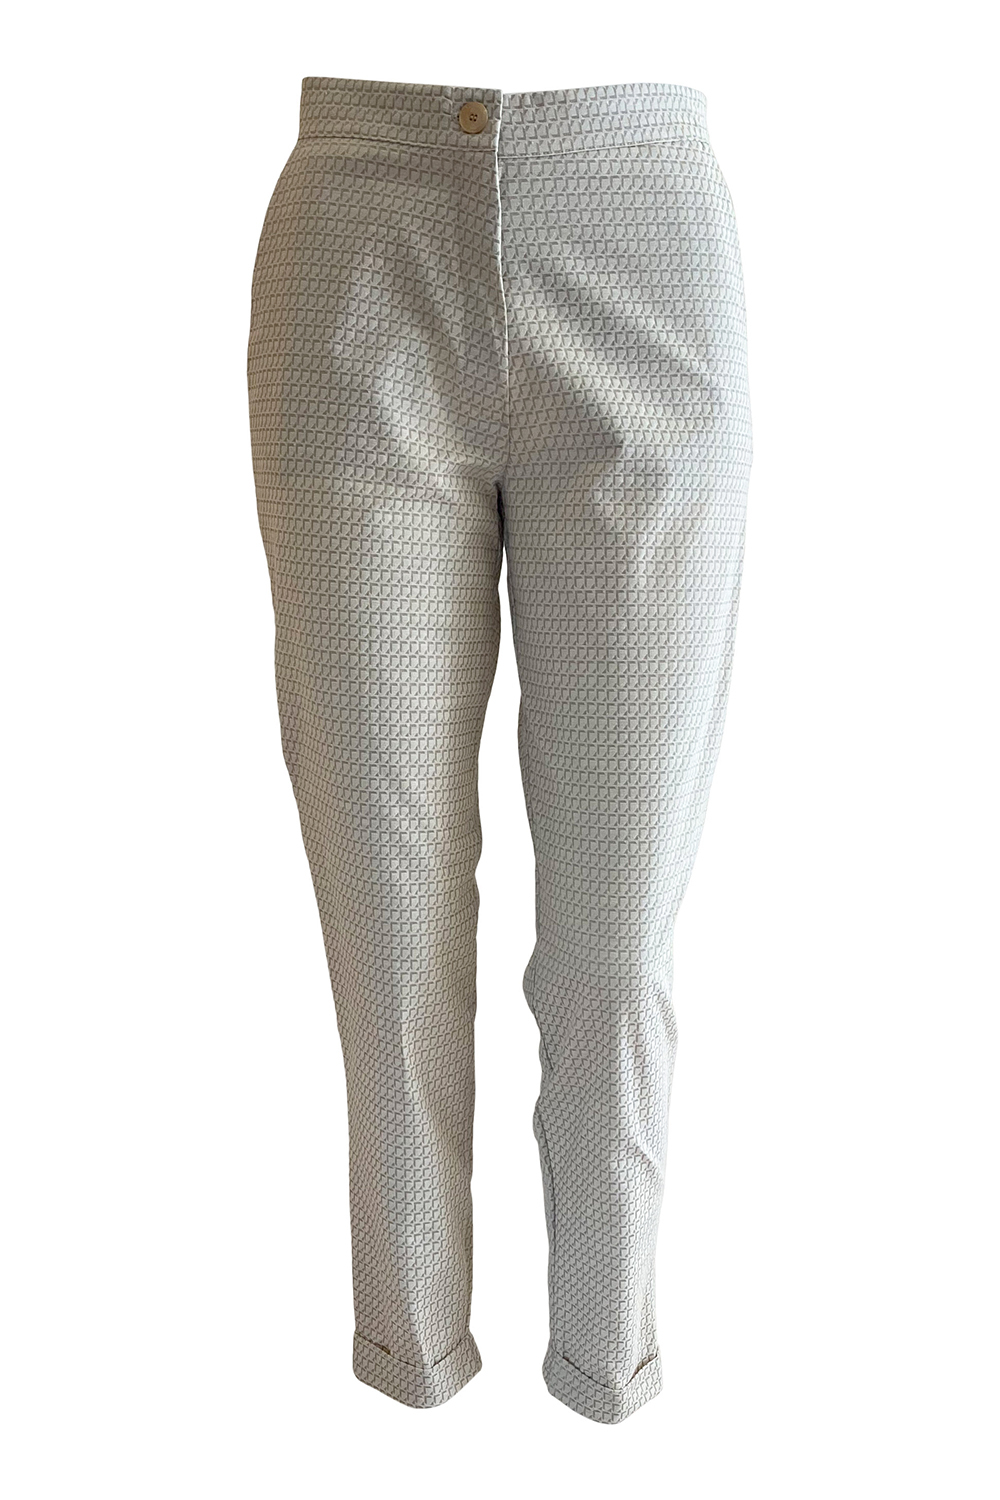 7/8 cigarette pants in beige and ivory printed cotton stretch jacquard TRACY